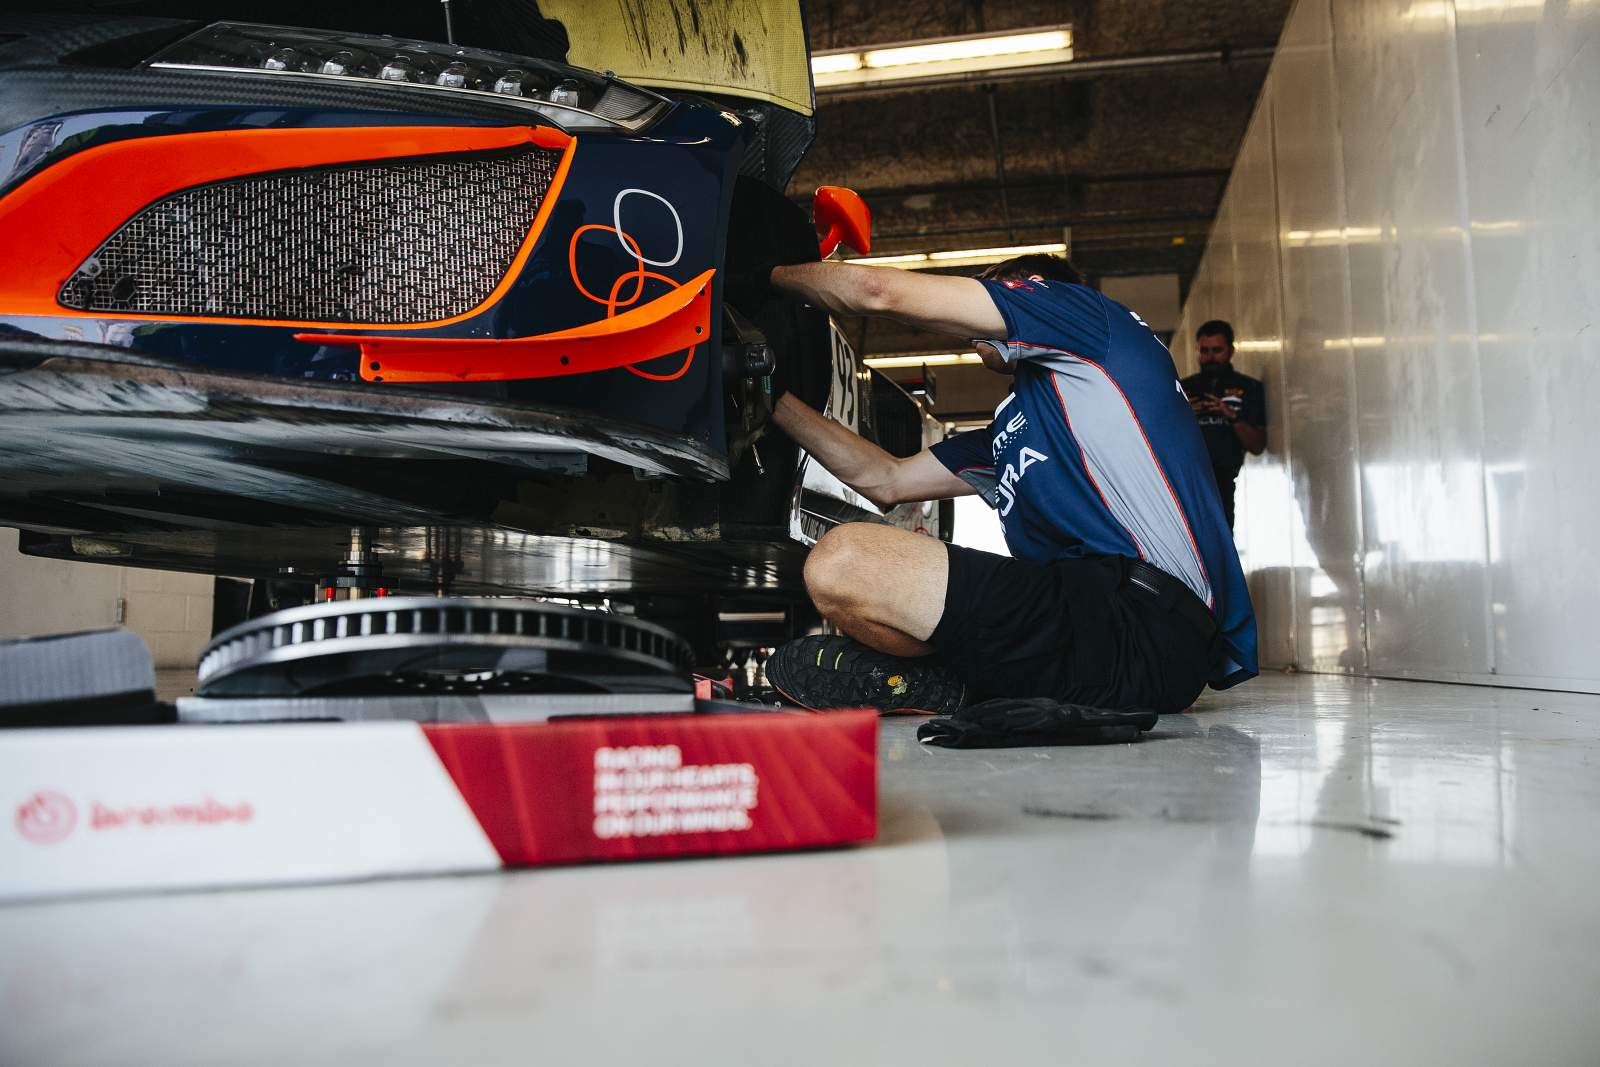 peter-kox-realtime-racing-pirelli-world-challenge-cota--007